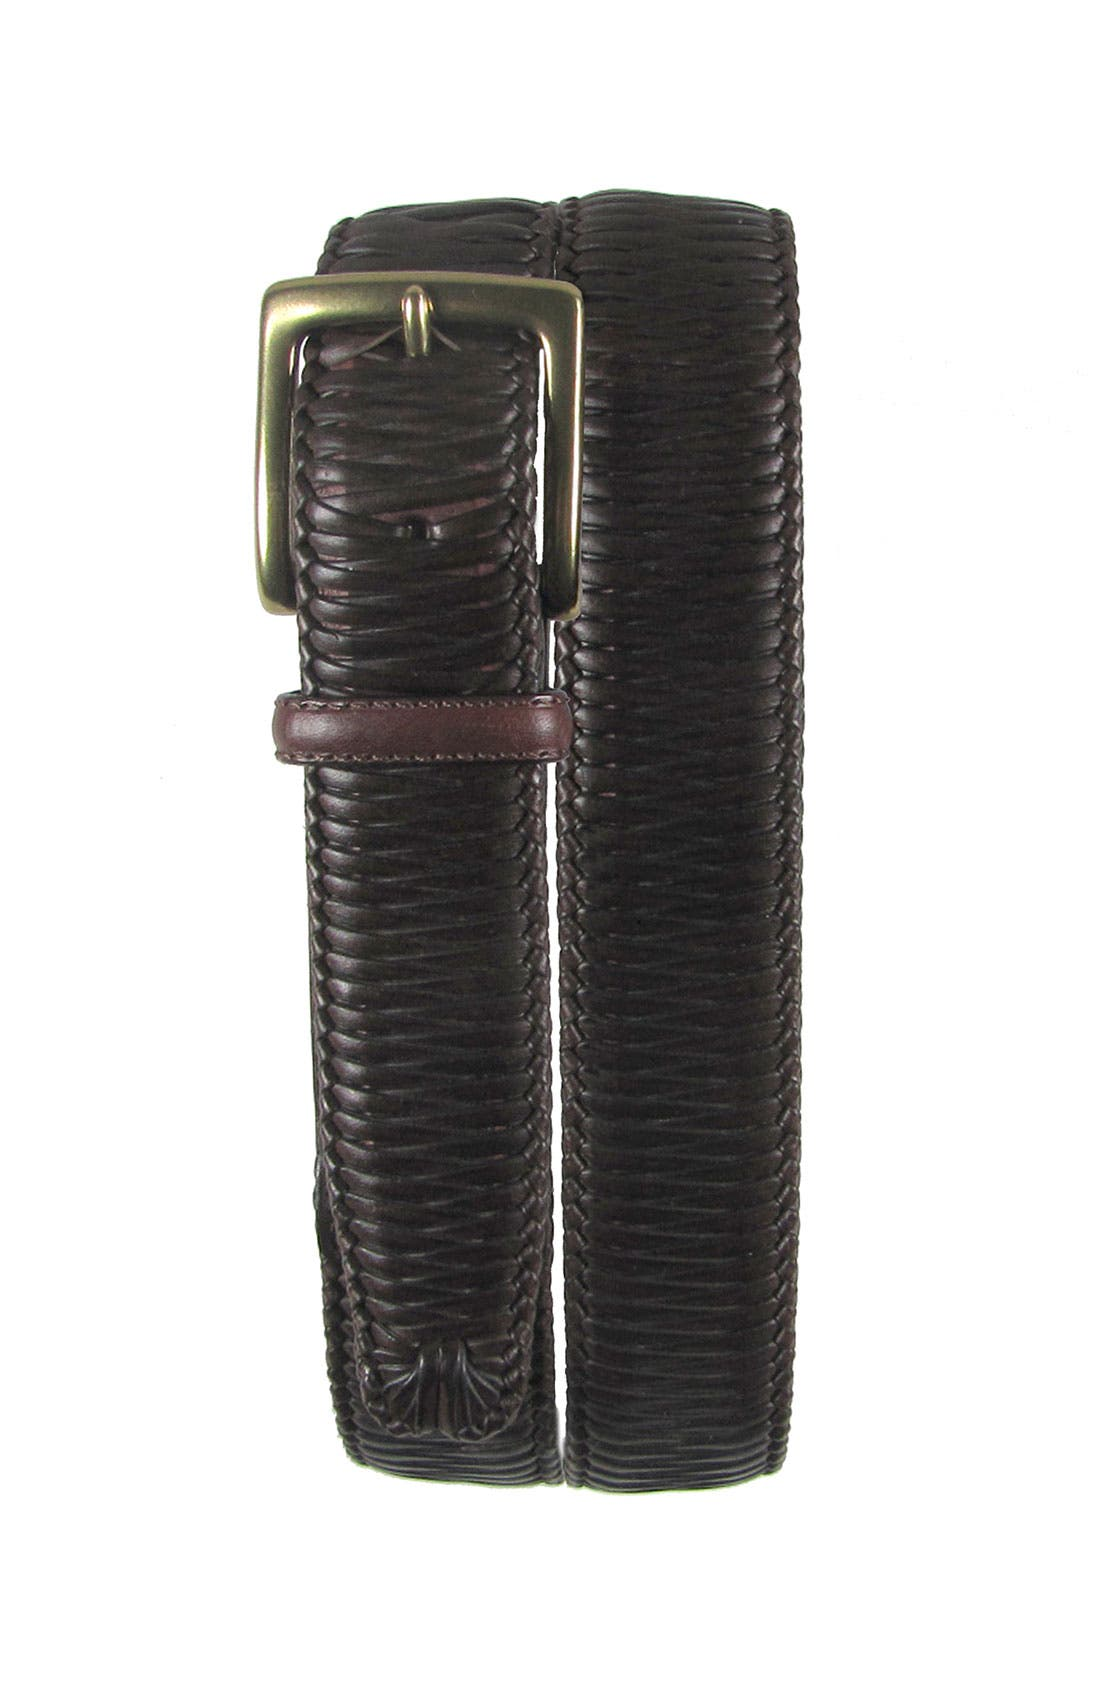 Alternate Image 1 Selected - Tommy Bahama 'Largo' Woven Leather Belt